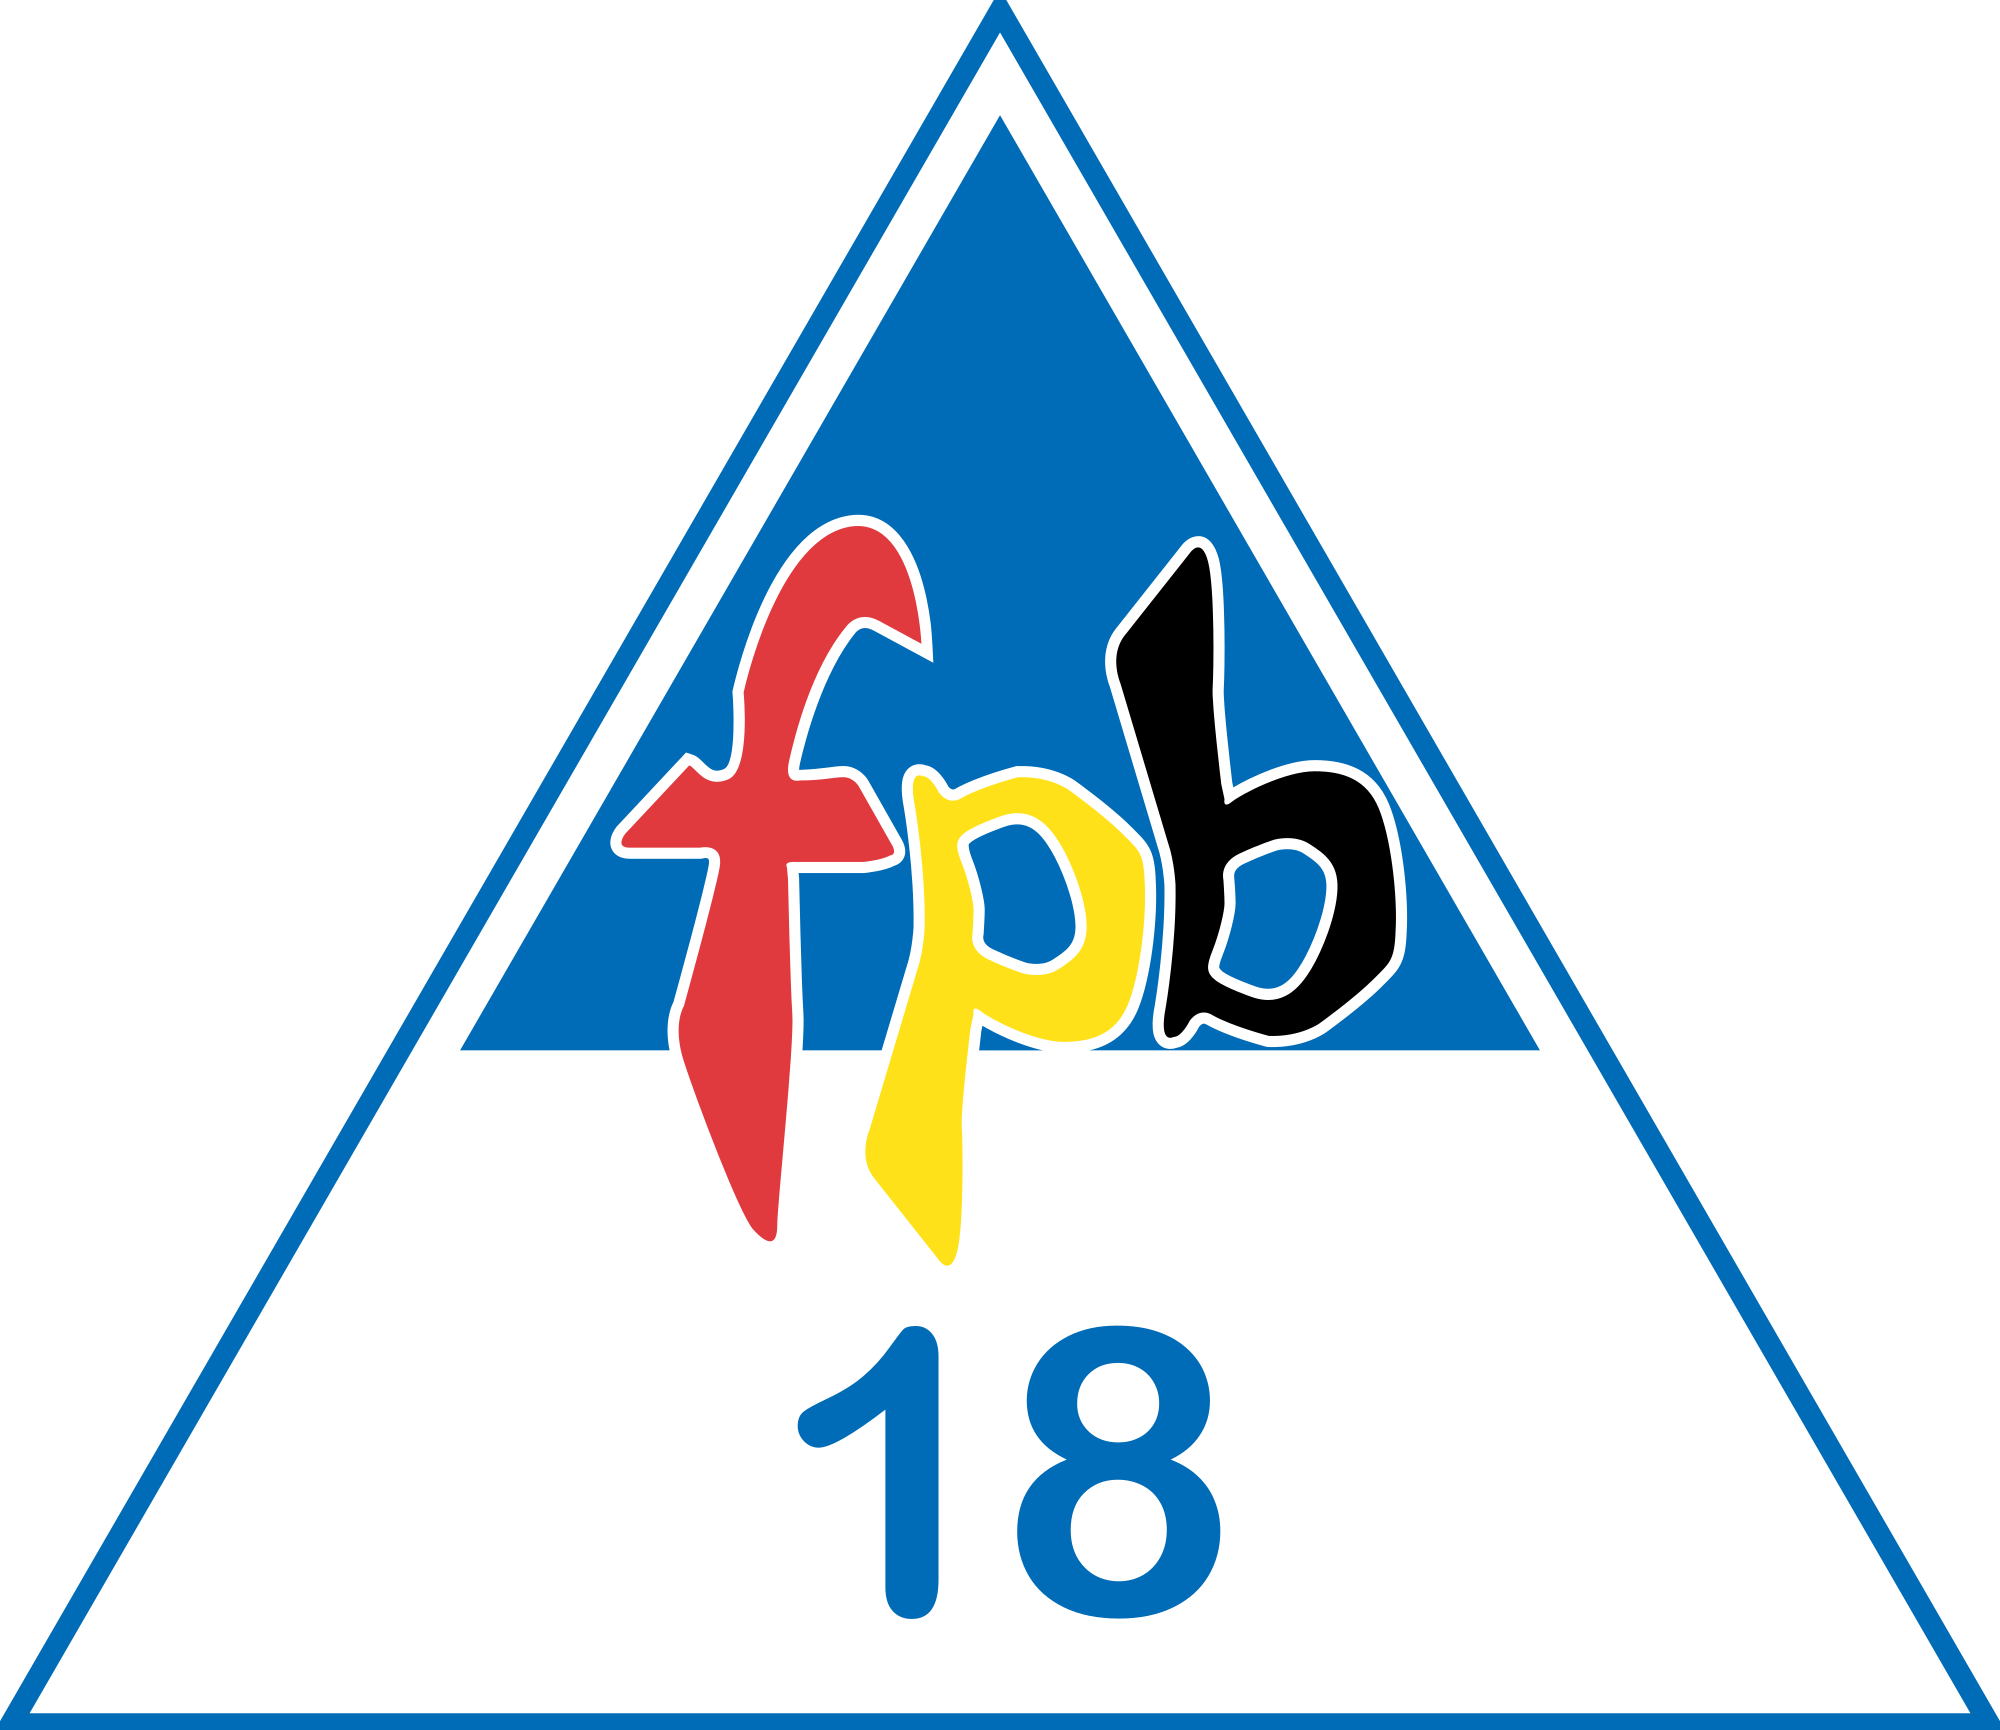 FPB 18.png